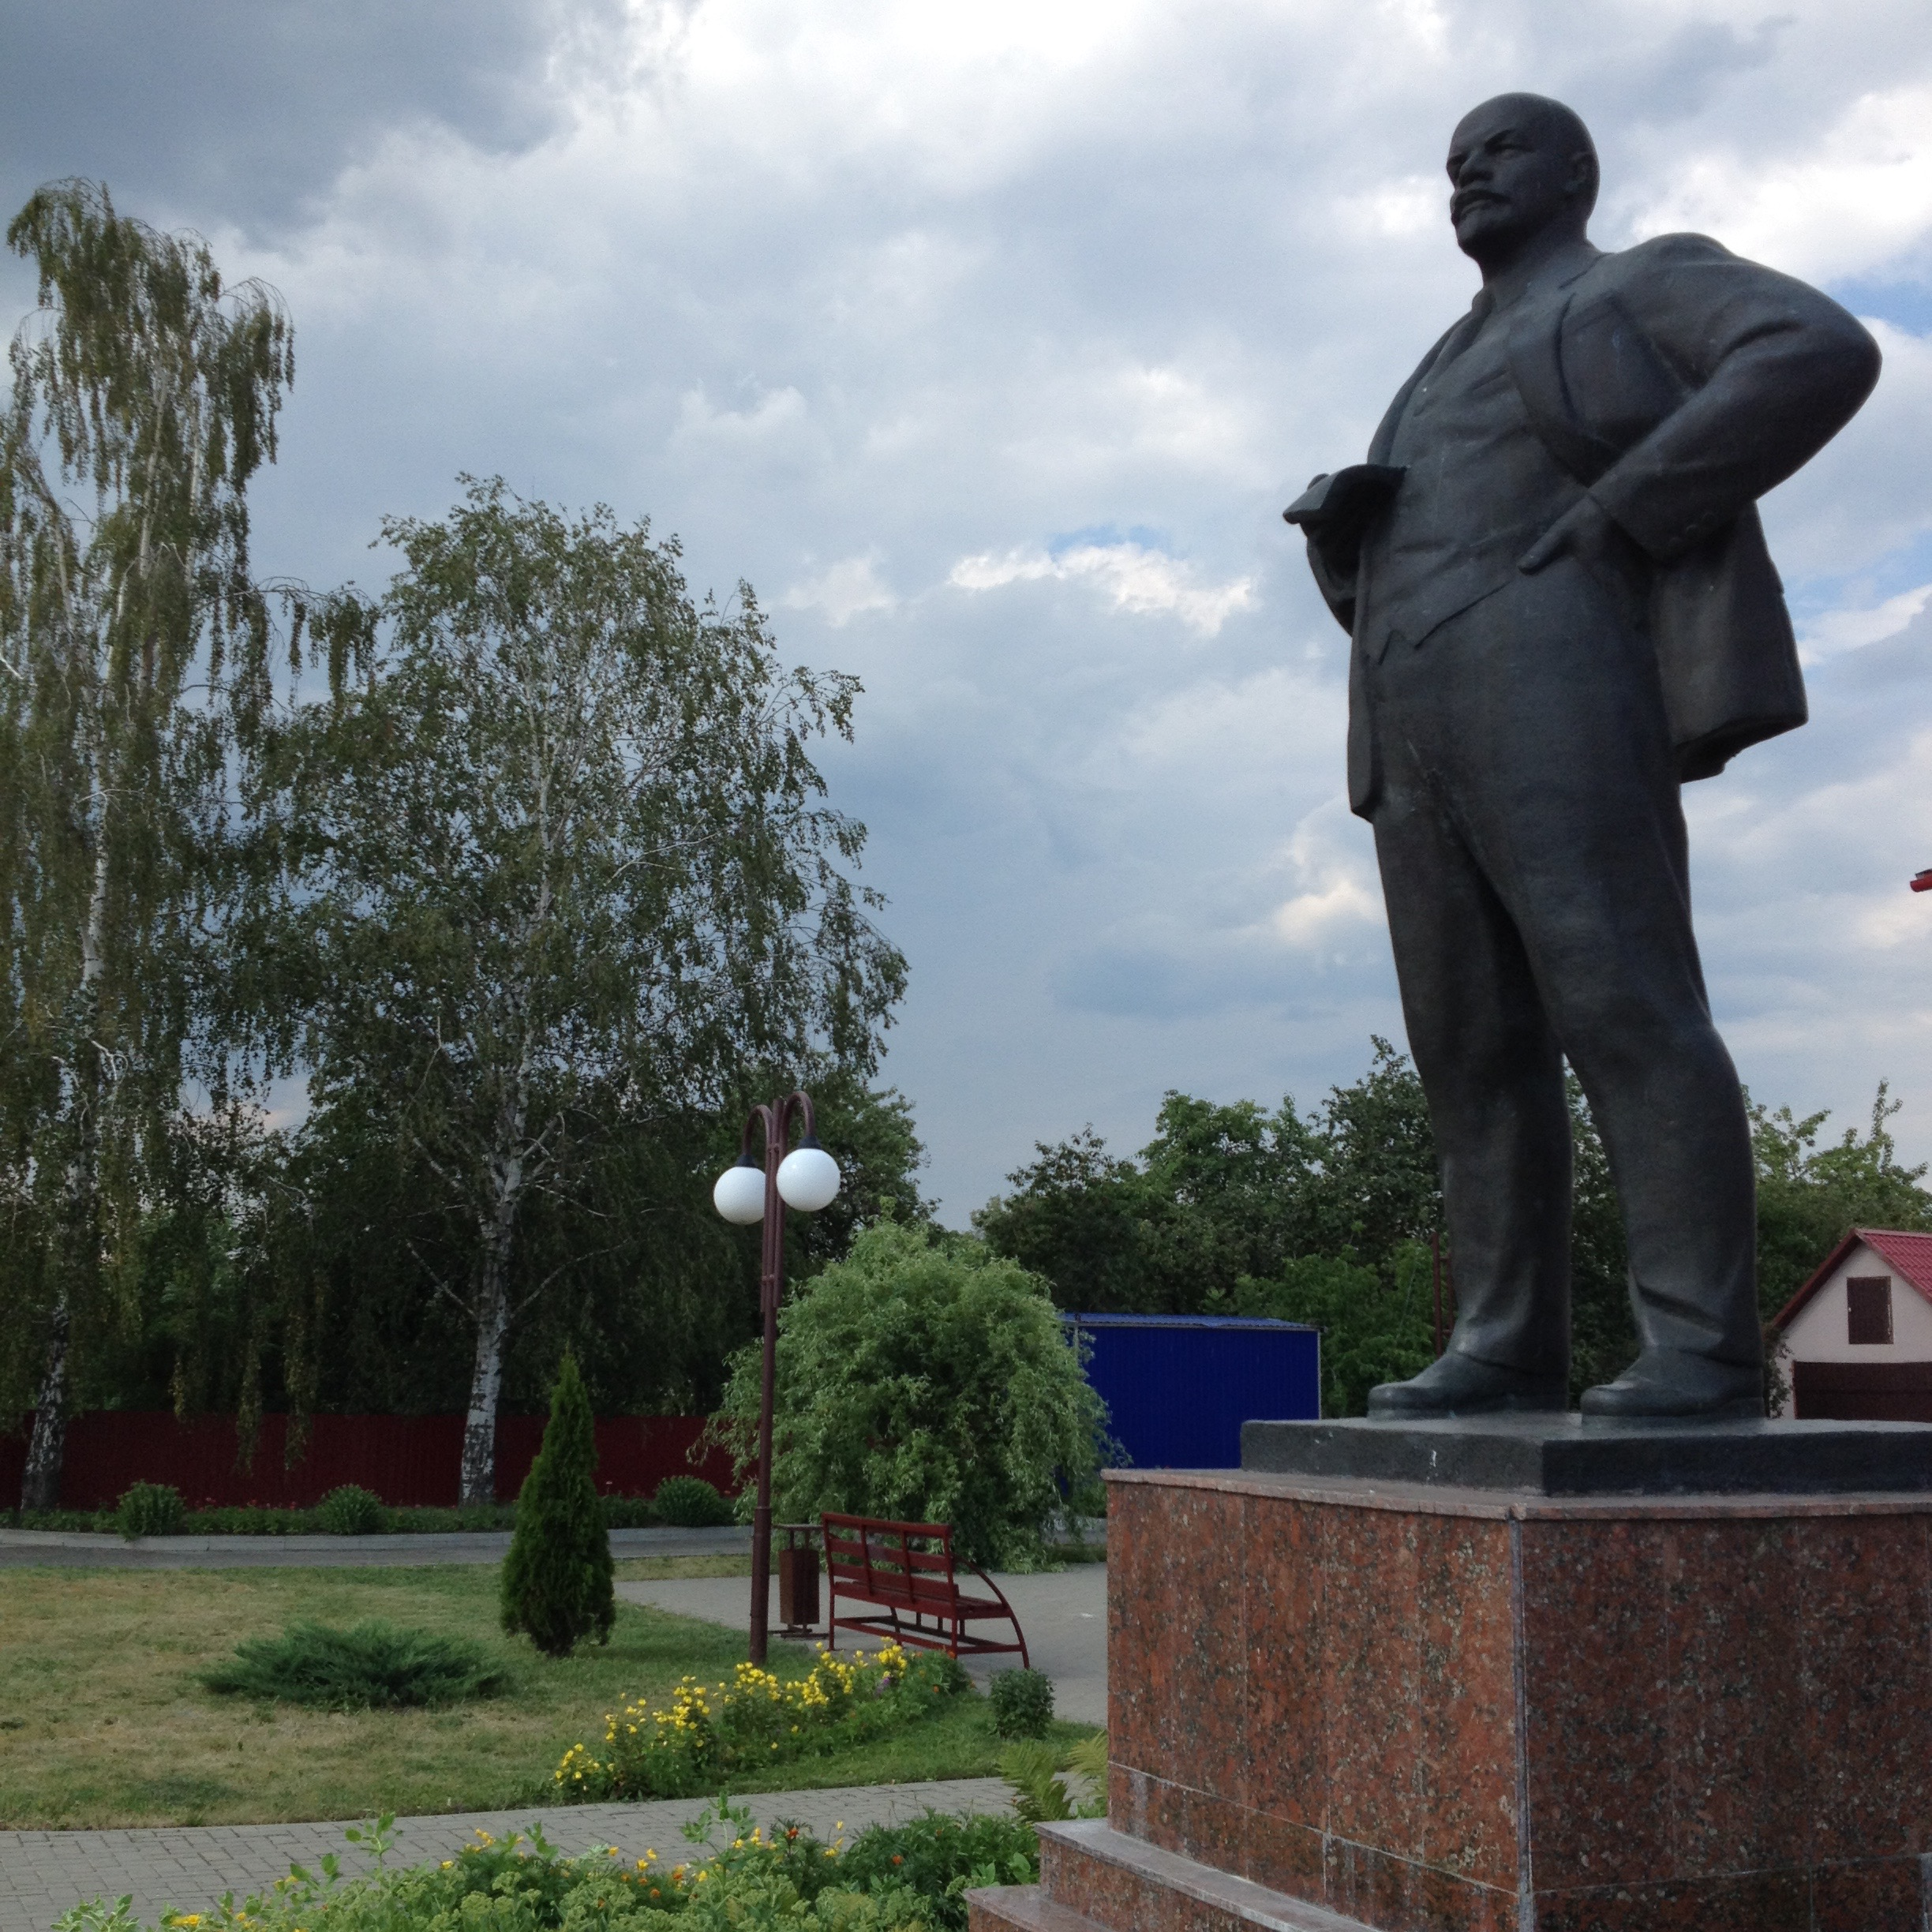 Lenin statue, found everywhere in Belarus.